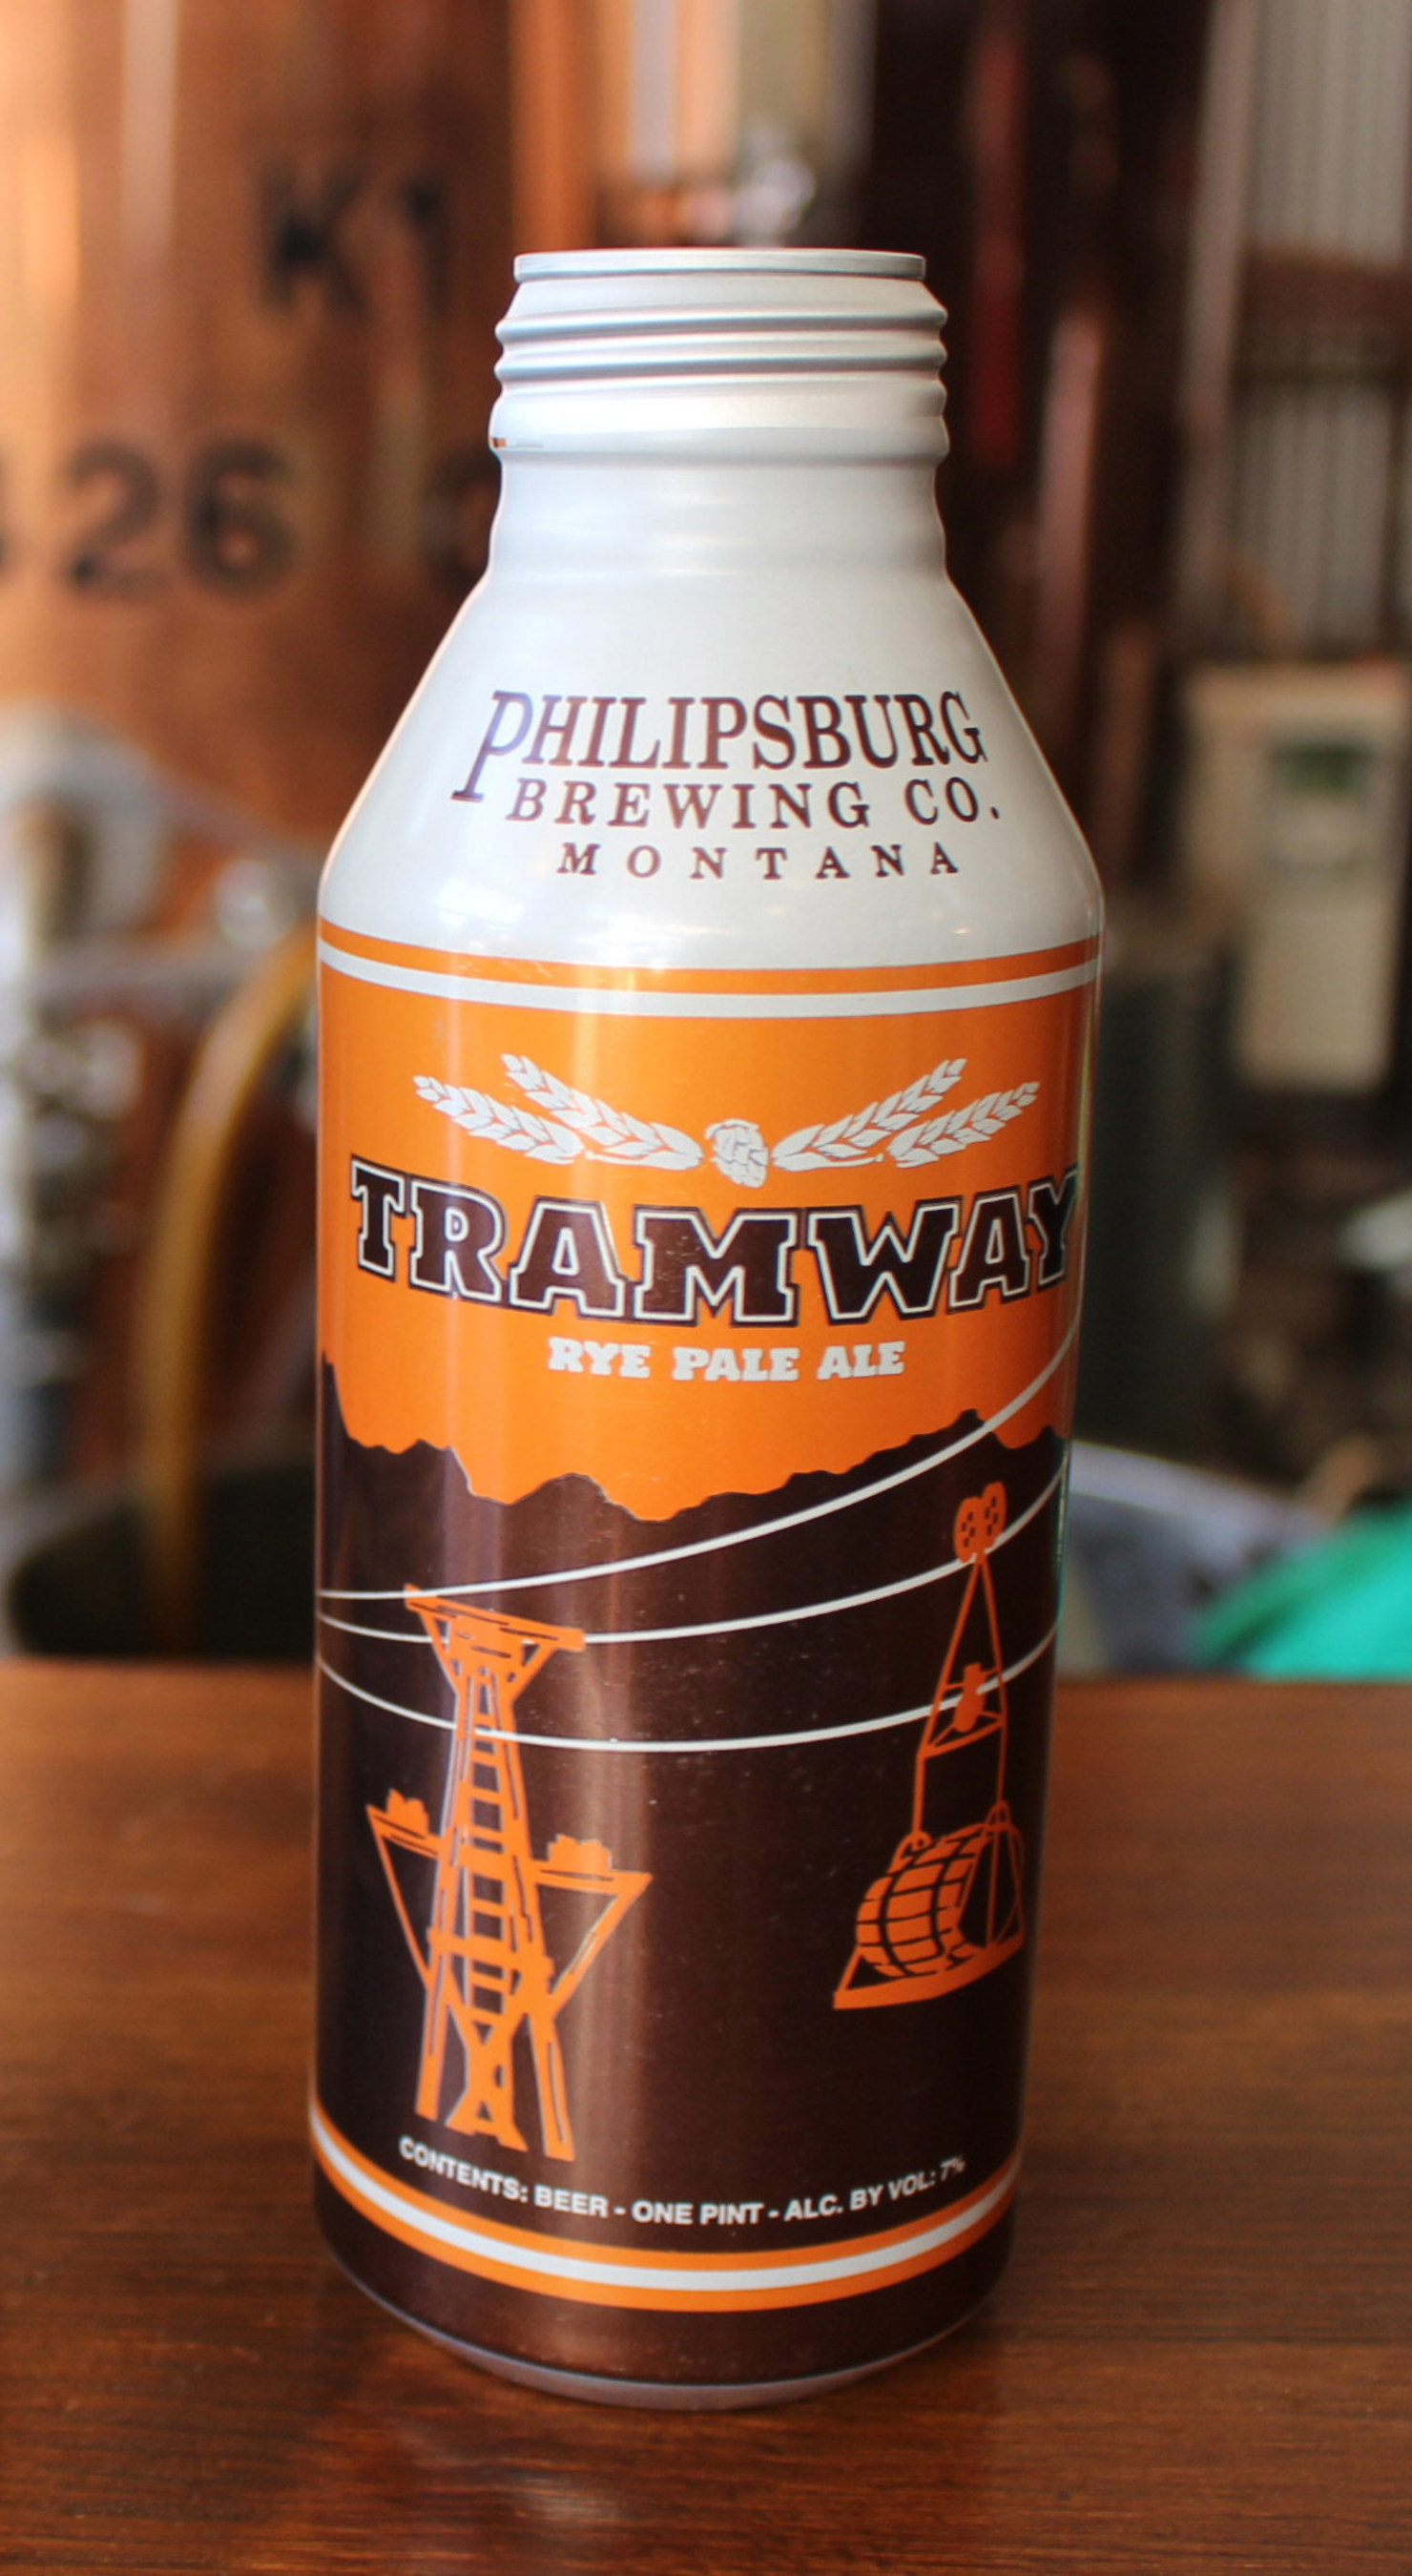 Philipsburg Brewing is introducing one of its most popular beers - Tramway Rye Pale Ale - in Alumi-Tek(R) reclosable bottles from Ball Corporation.